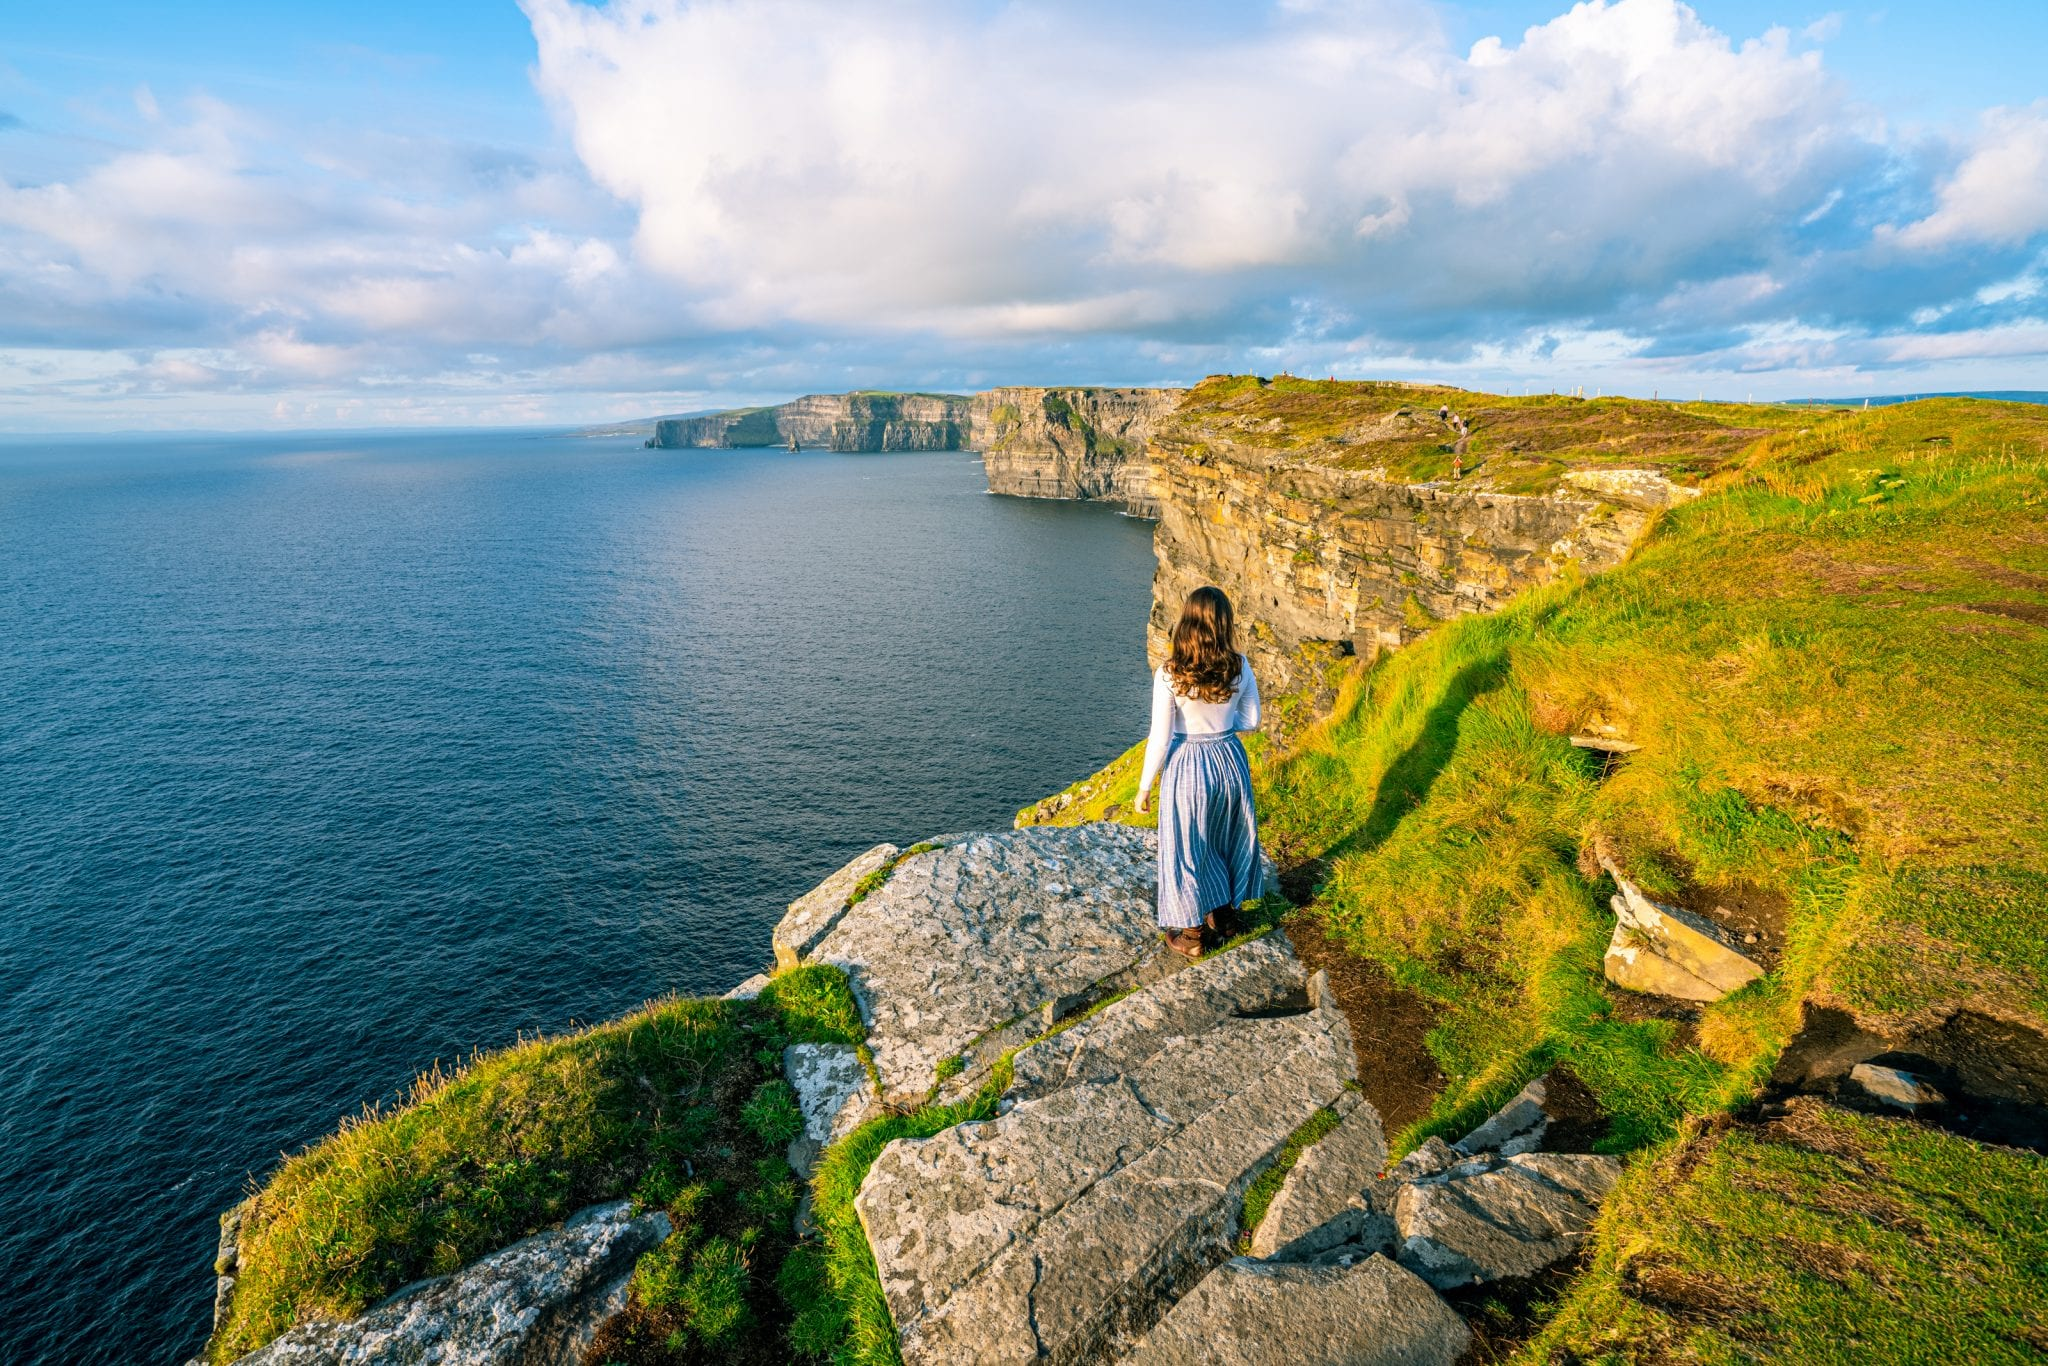 The Ultimate Guide to Visiting the Cliffs of Moher in Ireland